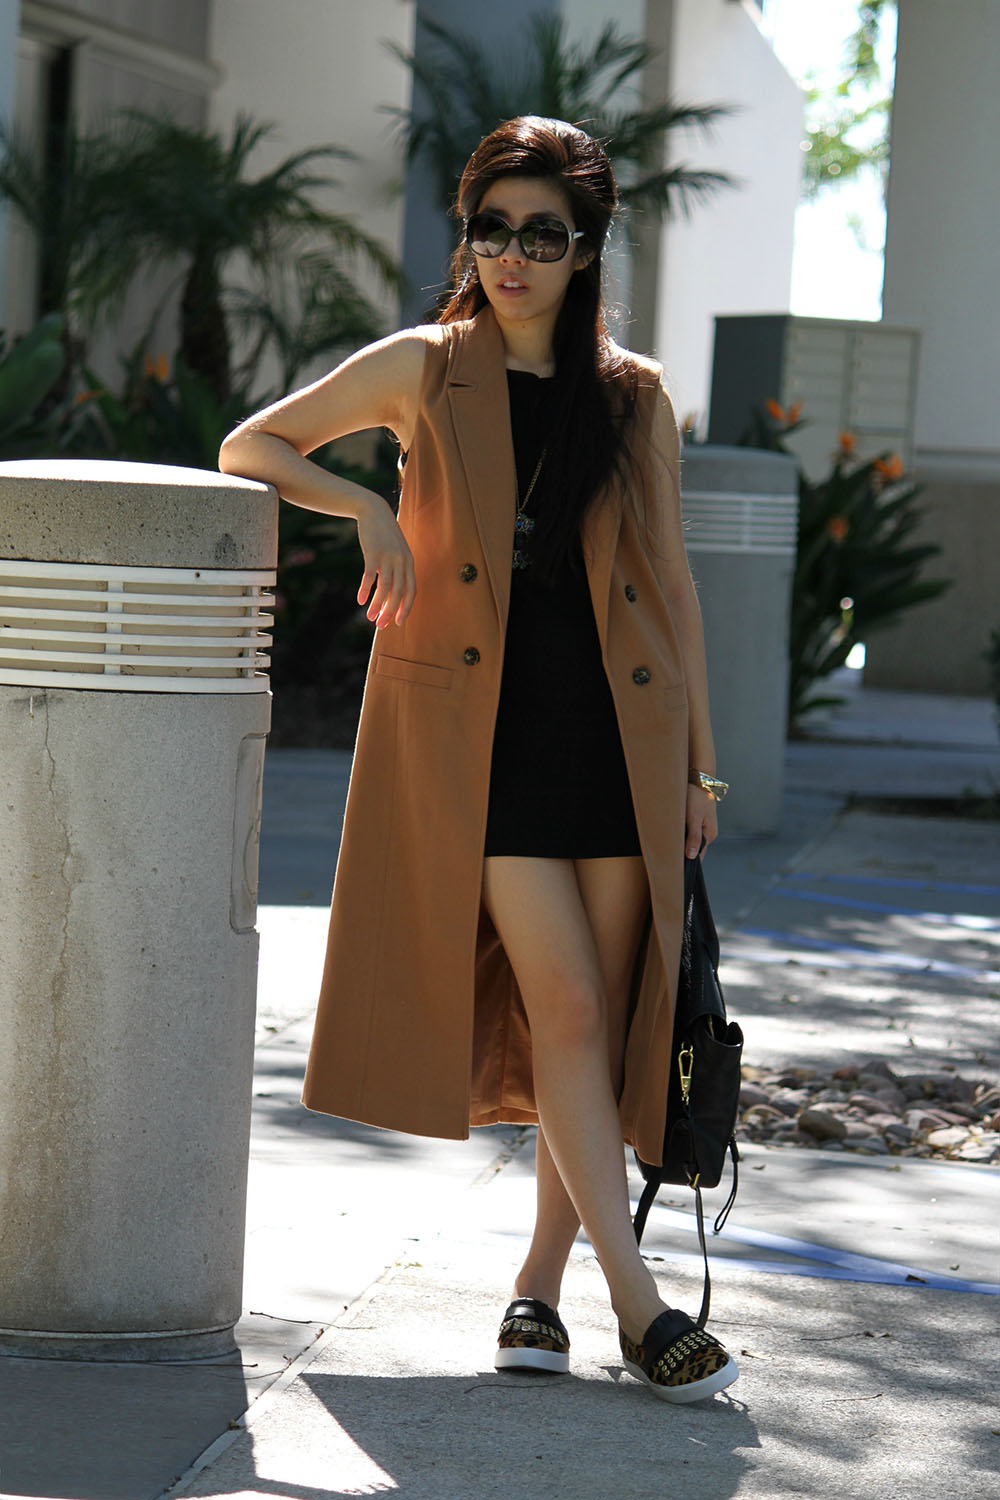 Adrienne Nguyen_Invictus_Calf Hair Slip-On's Kate Spade_Duster Coat and Black Dress